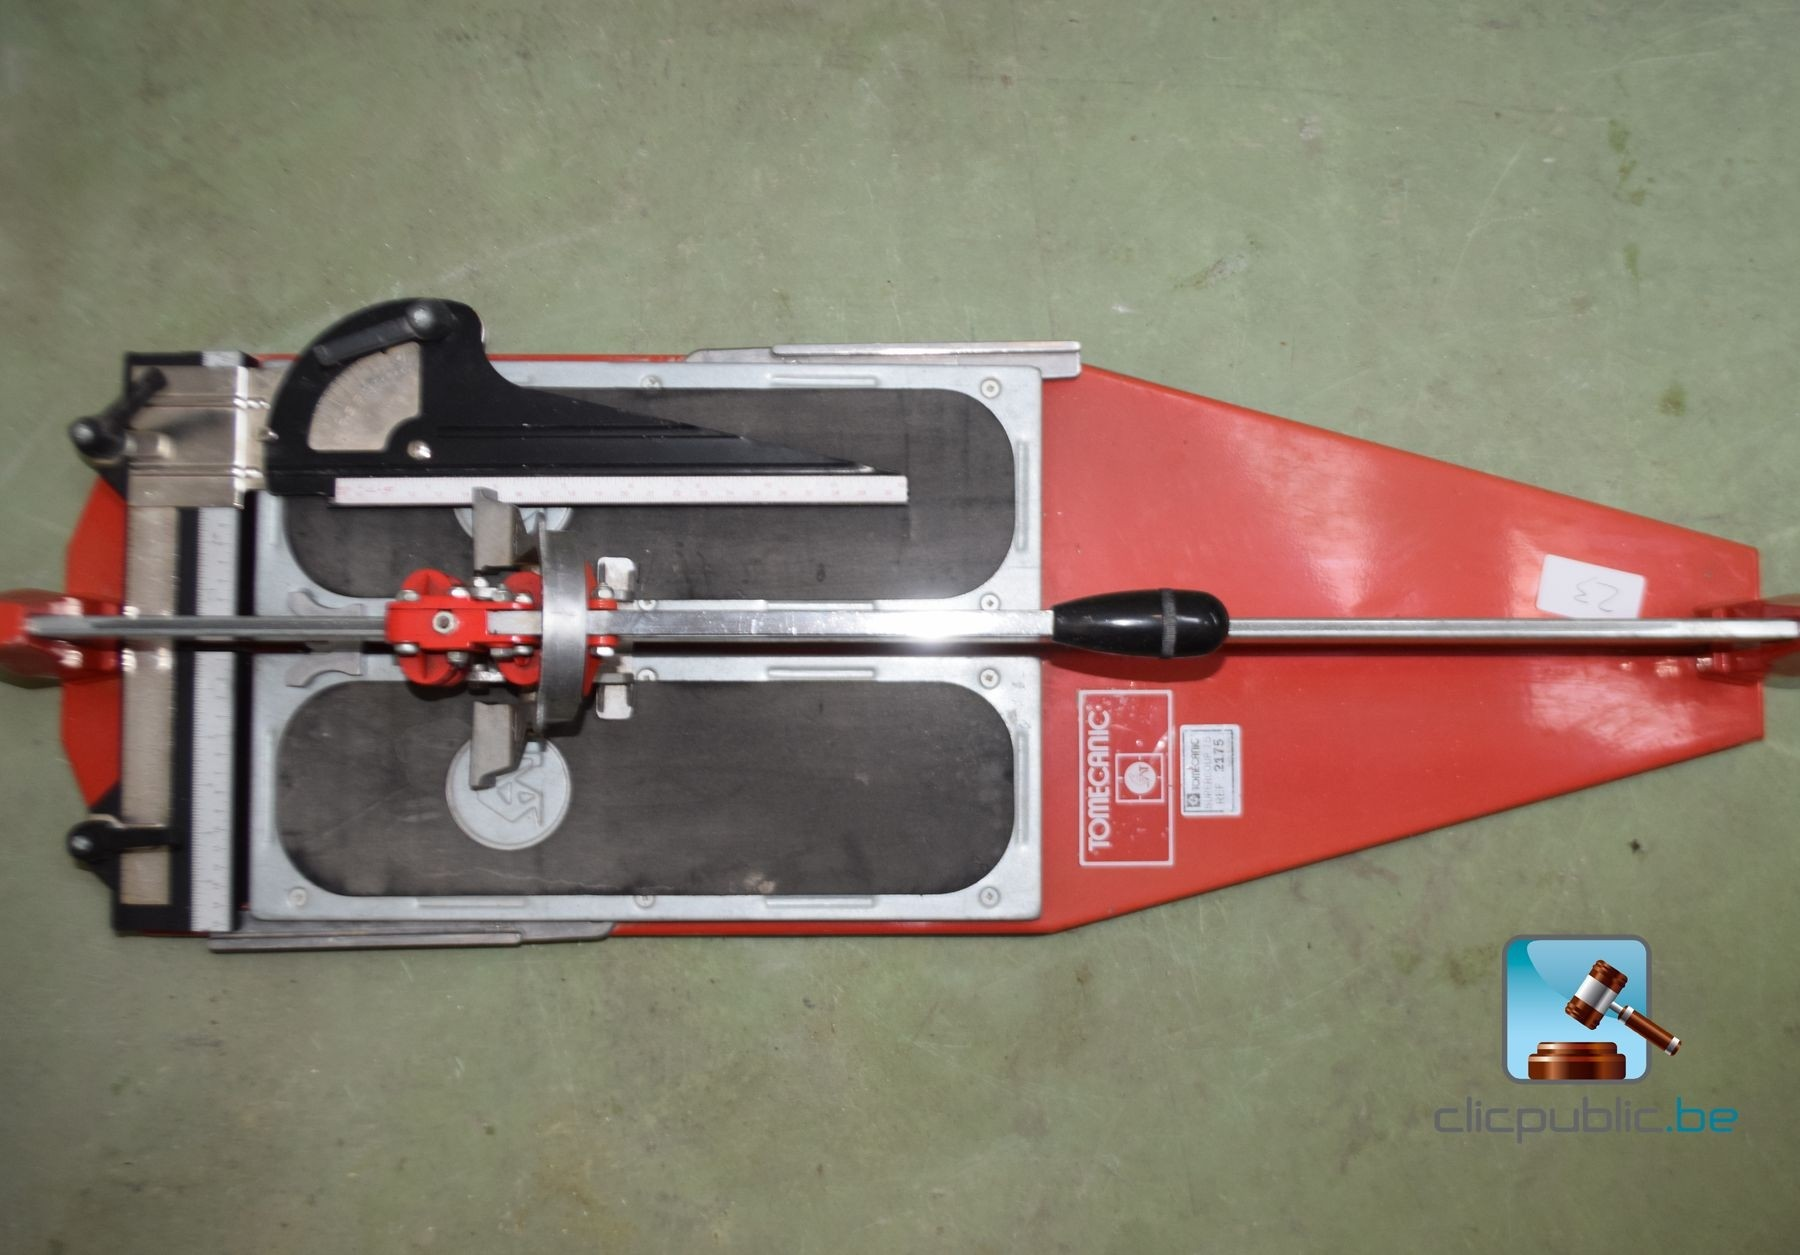 tile cutter tomecanic supercoup 75 ref